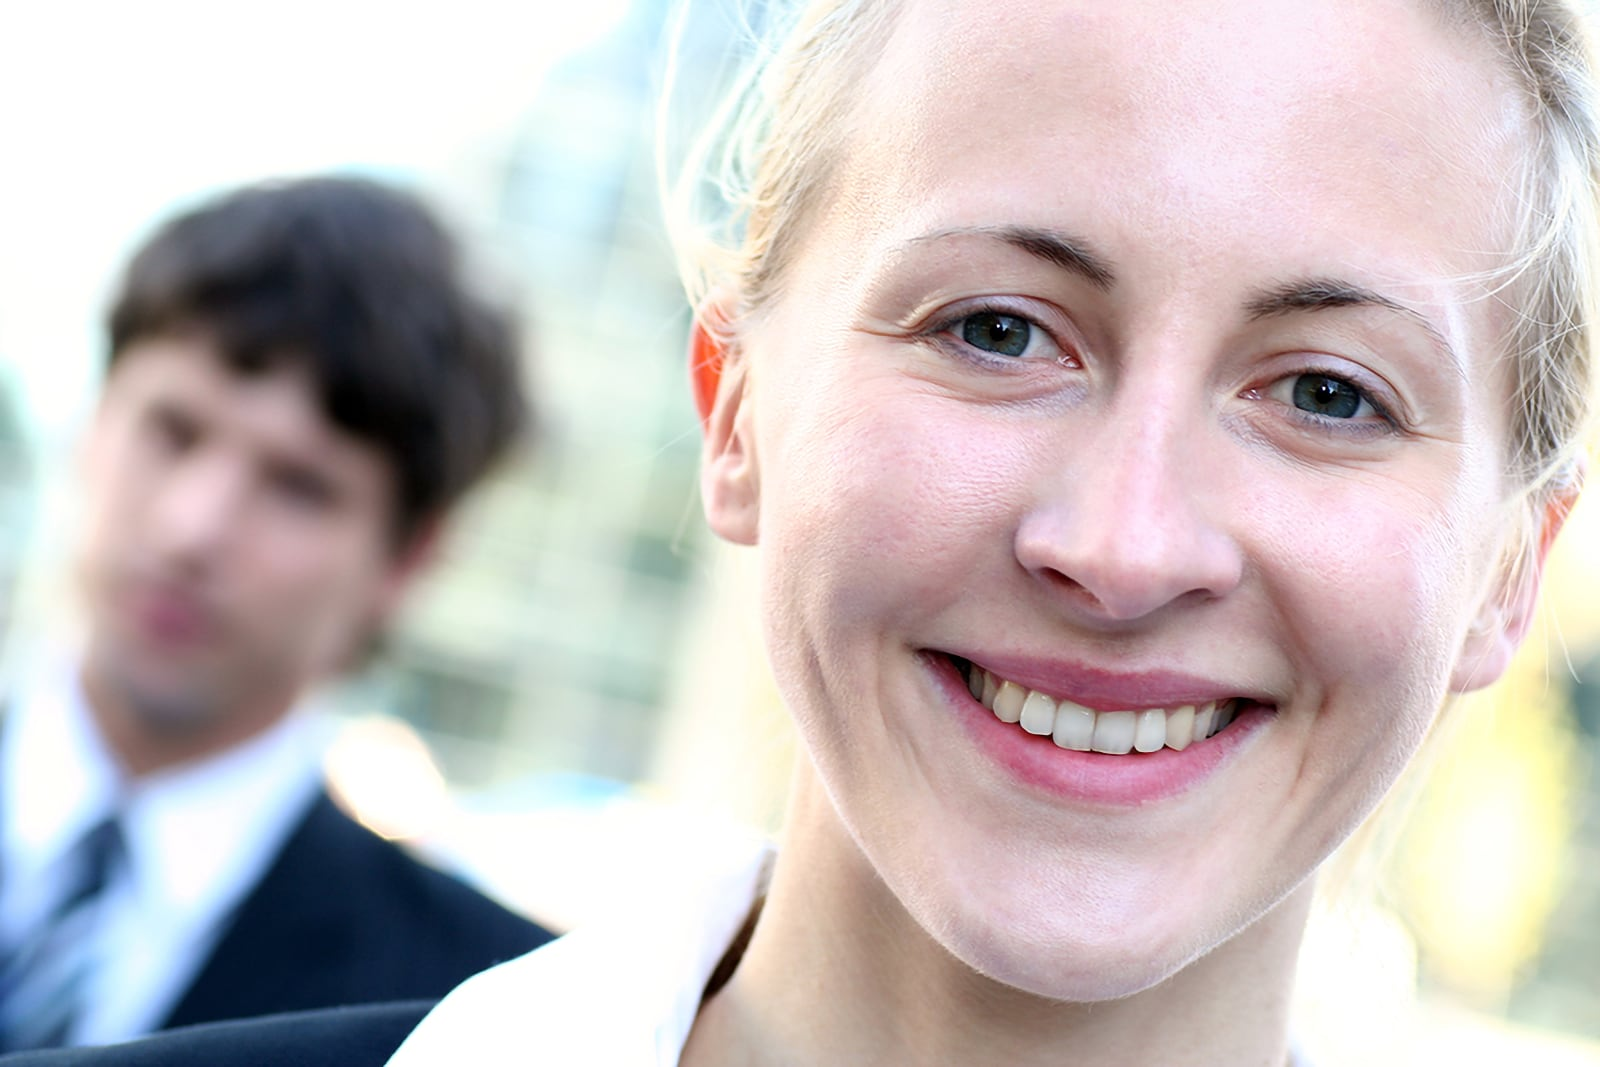 Photo of male and female business people outdoors. Younger blond haired female head shot is in focus, closer to the camera, and smiling. Younger white male is further away from the camera and out of focus